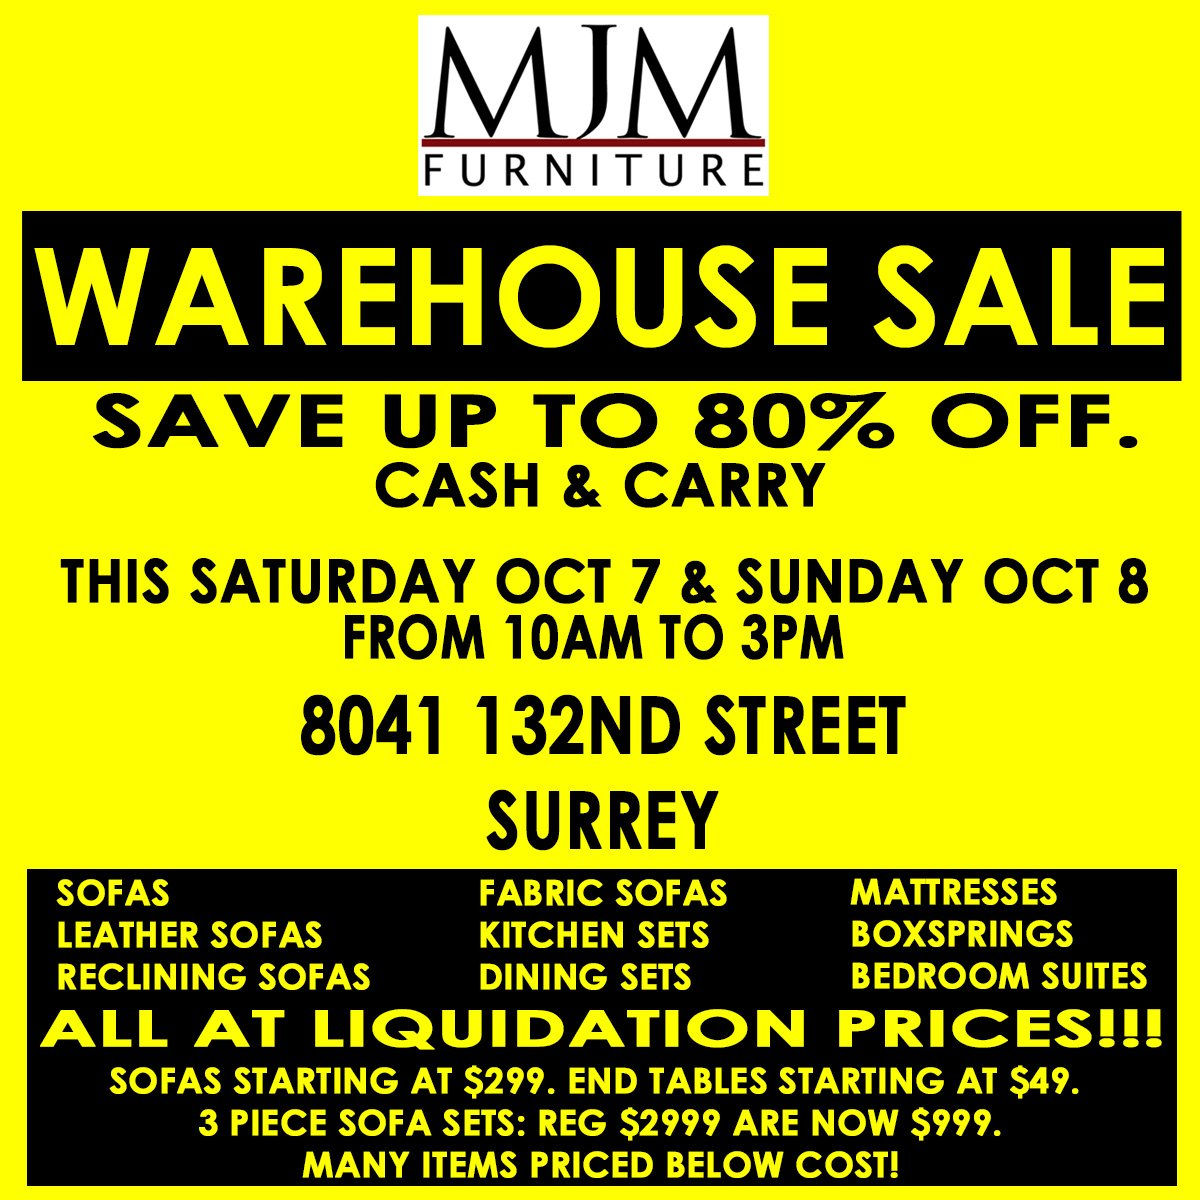 #mjmfurniture #sale #furnituresale #furniture #surrey #coquitlam #vancouver  #liquidationsale #furnitureliquidation #furnitureonsalepic.twitter.com/ ...